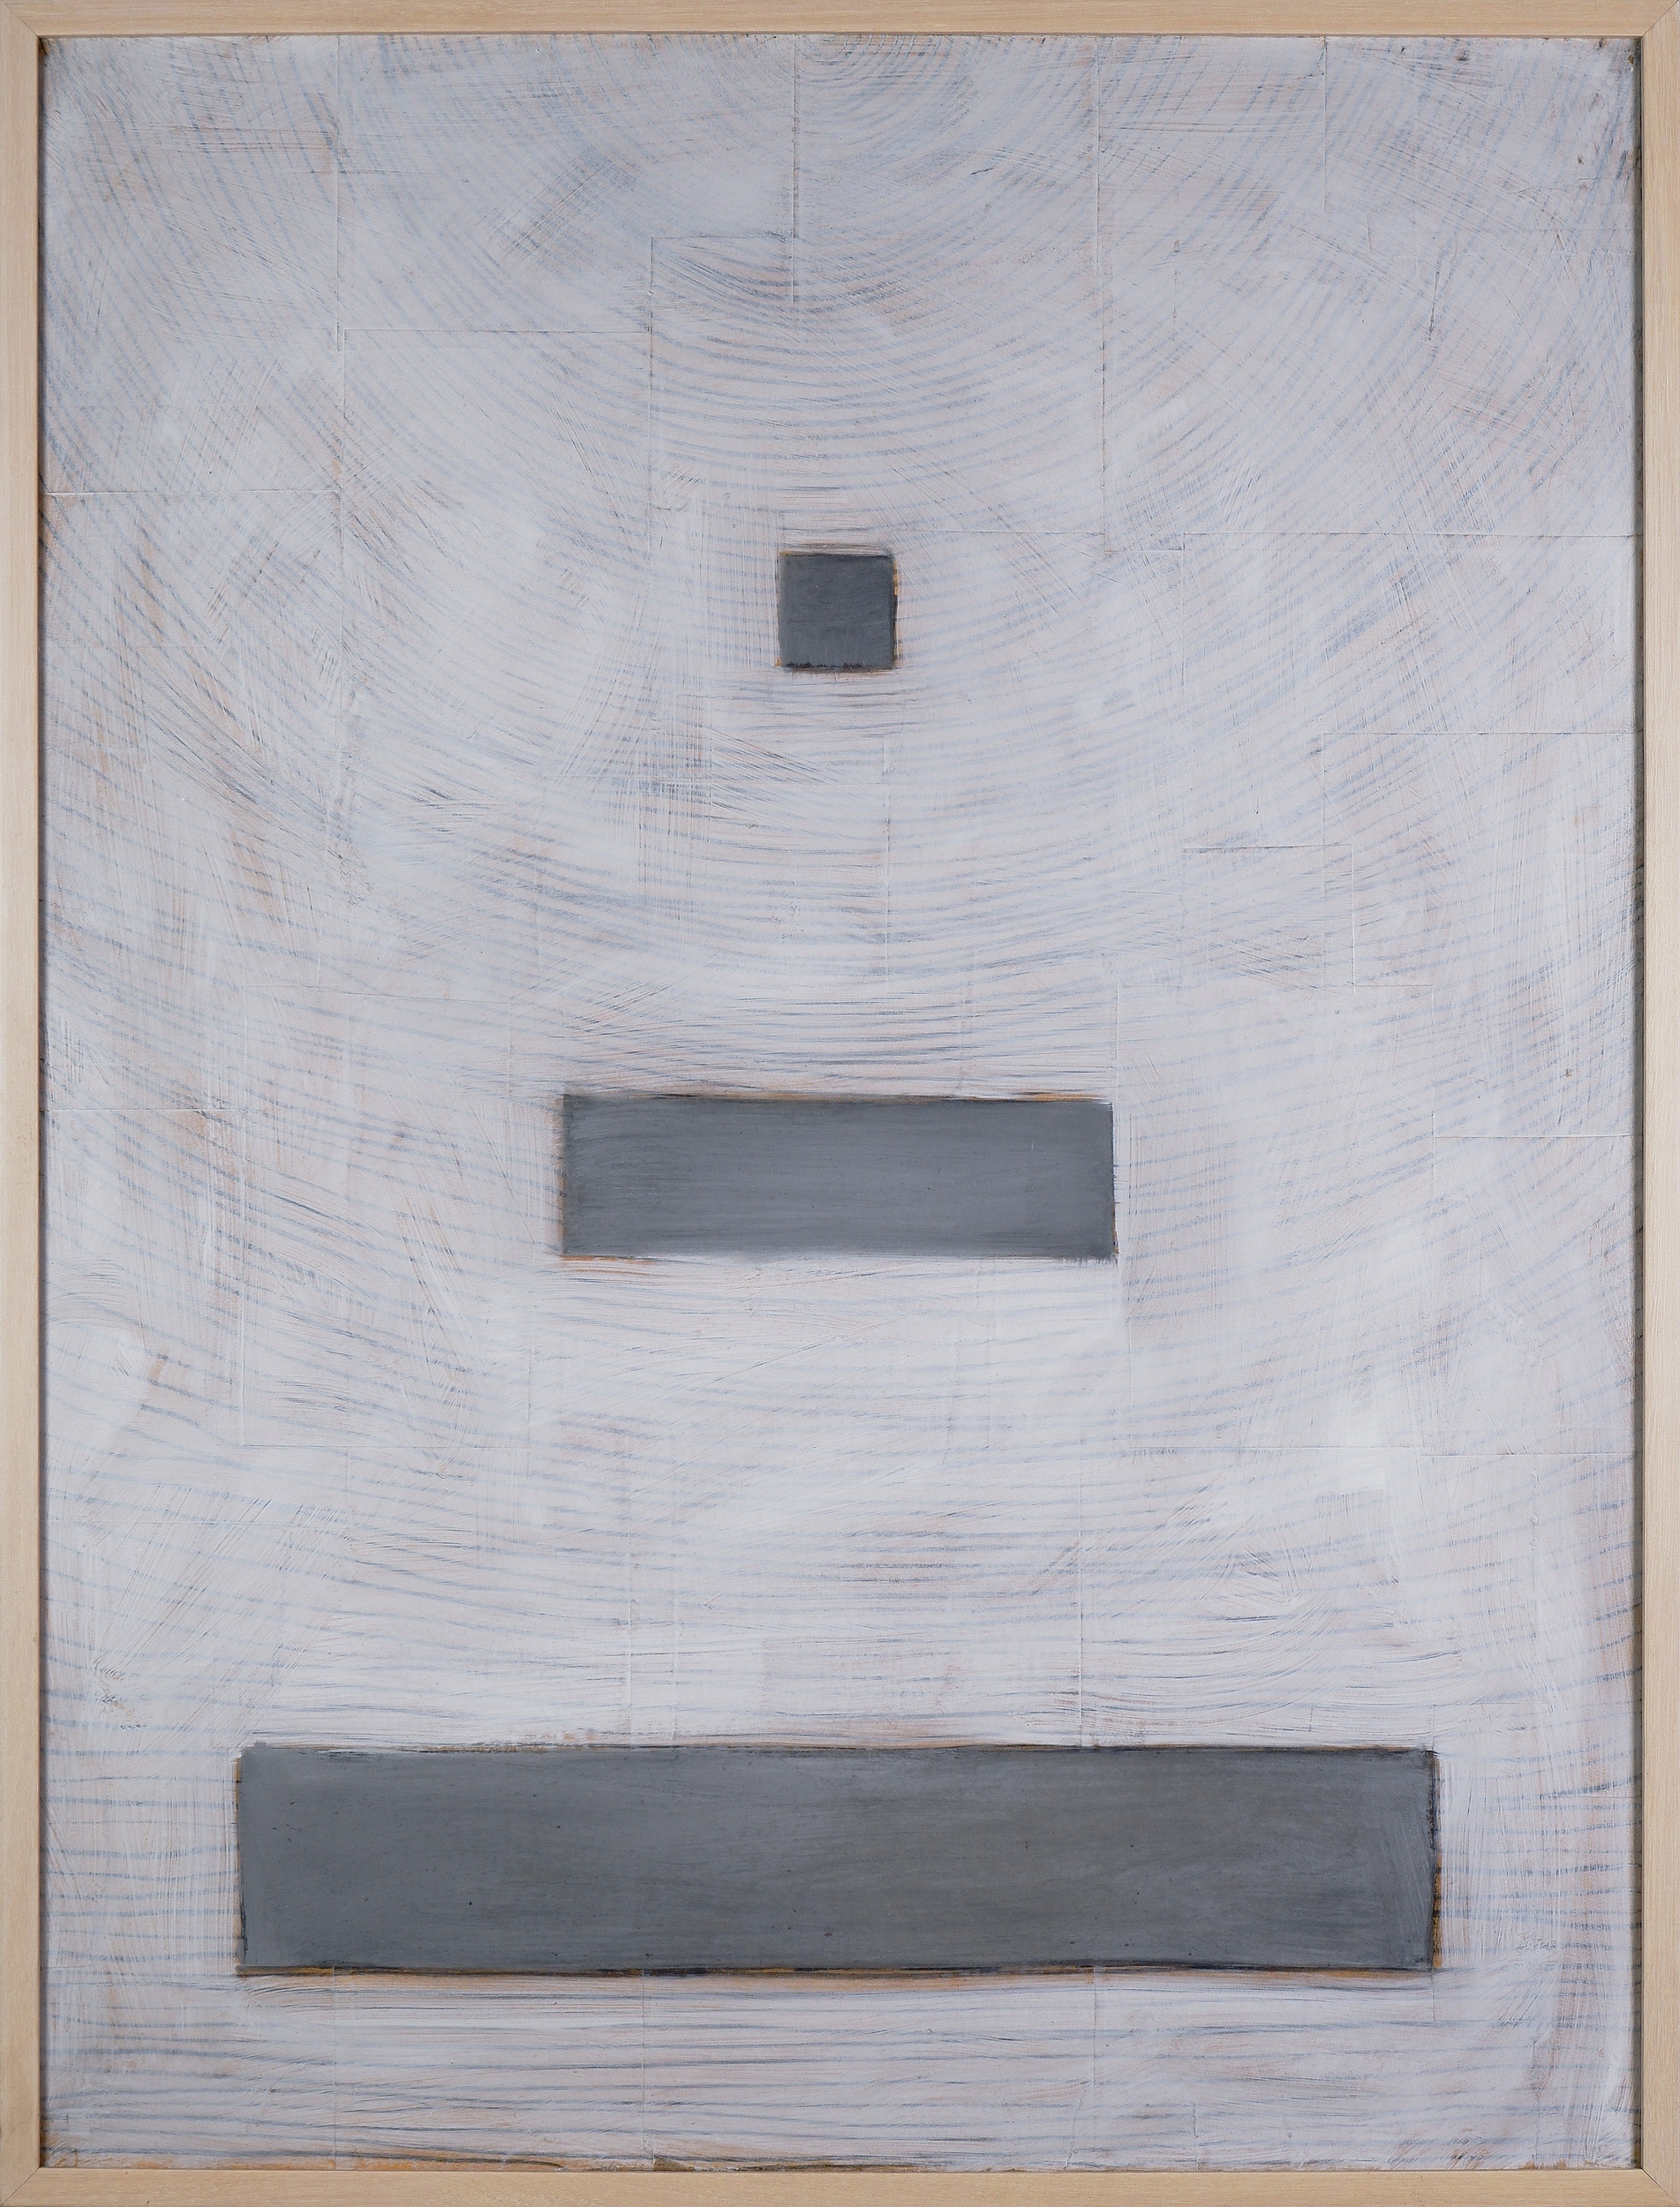 'Christopher Snee (born 1957), Untitled (White Background 1990, Oil, Graphite and Paper on Canvas, 100 x 75 cm'